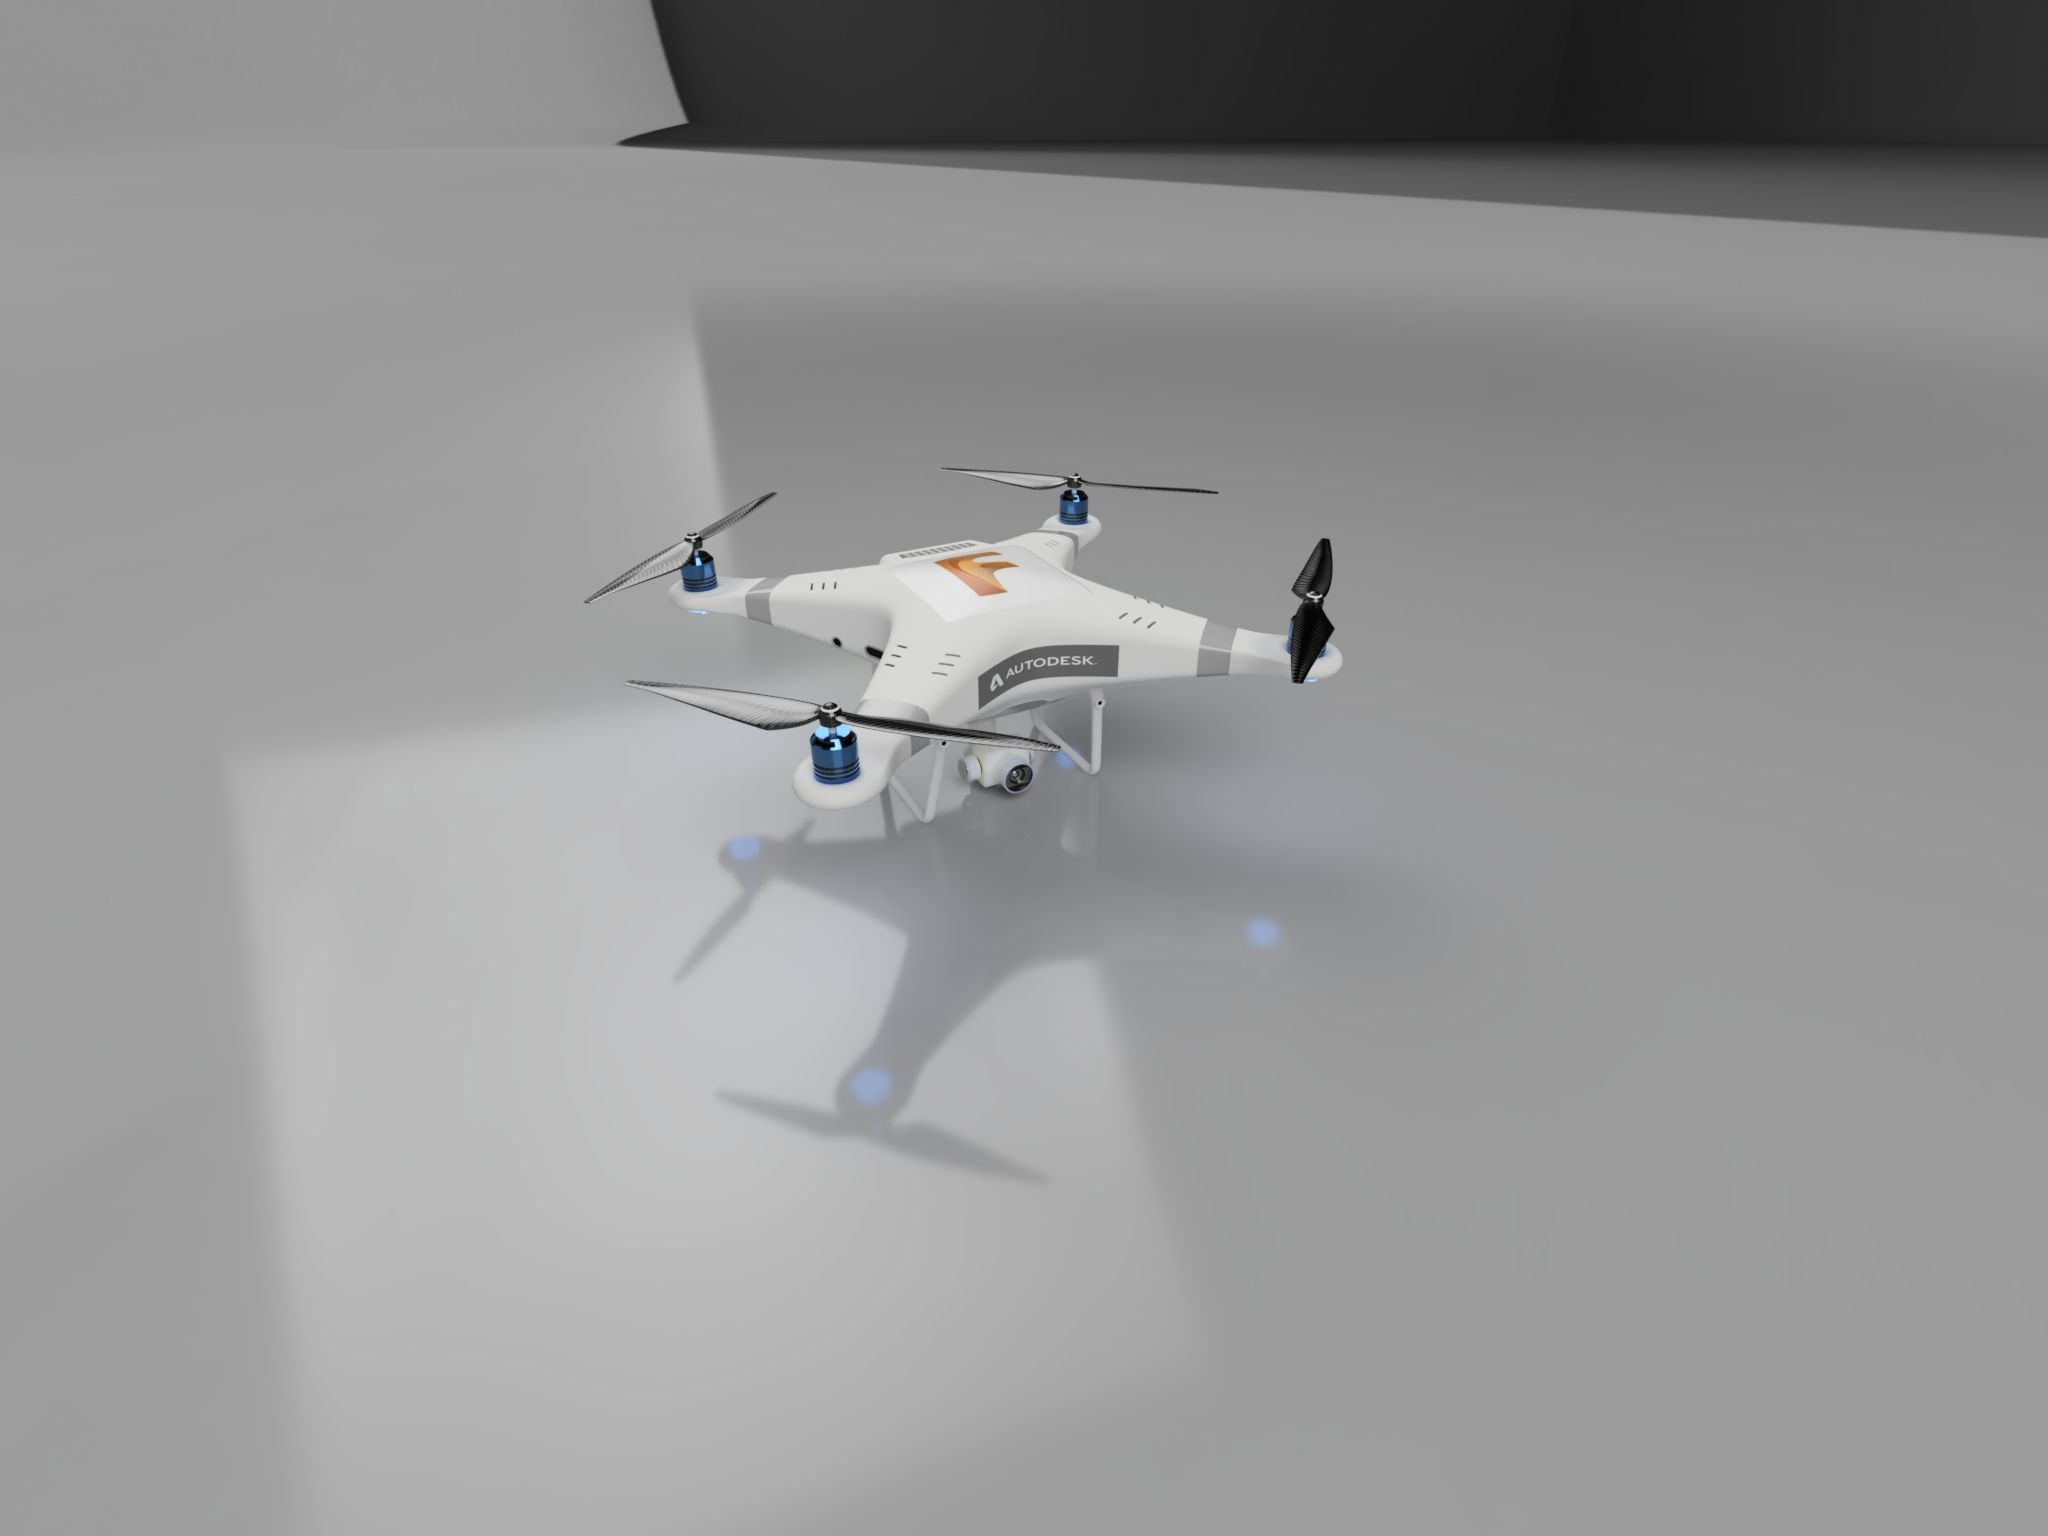 Drone-phantom-2018-oct-28-04-37-59am-000-customizedview2110404446-jpg-3500-3500